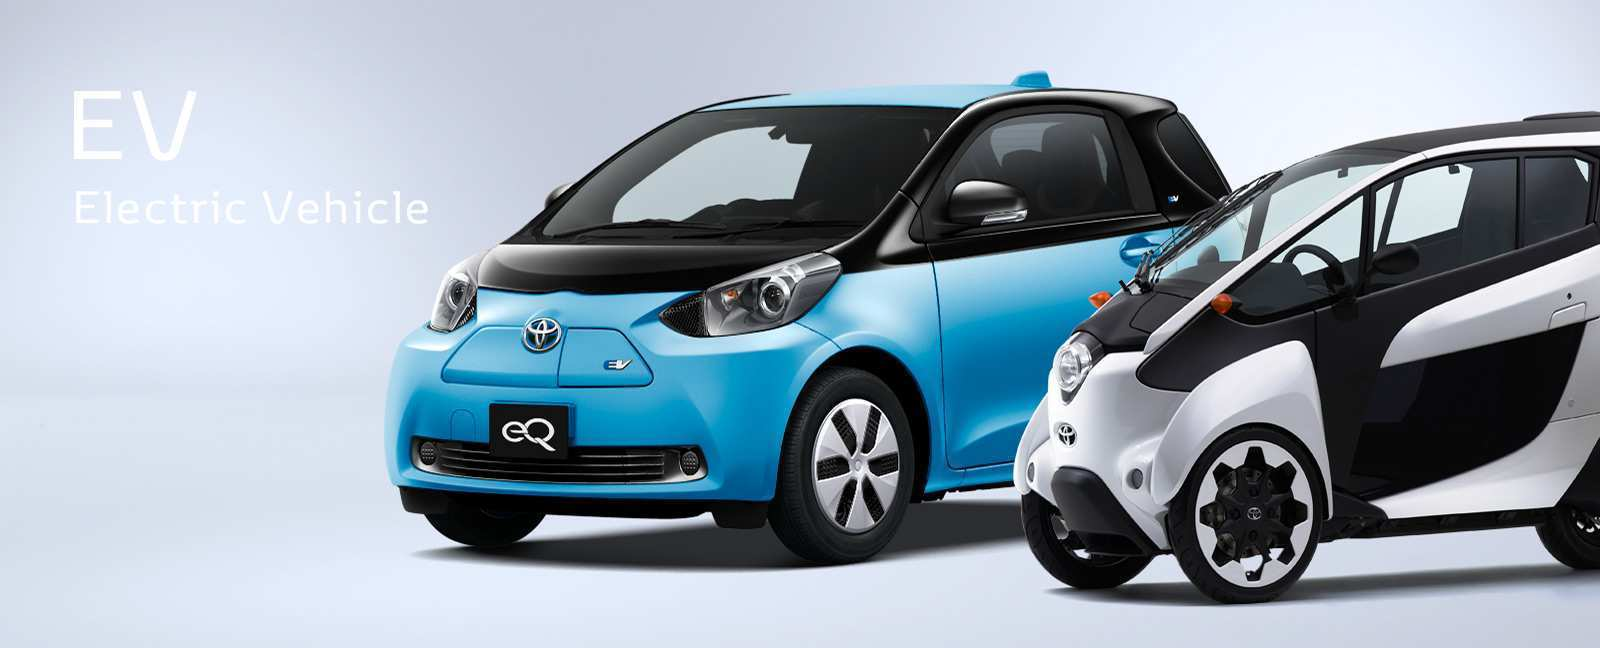 42 New 2020 Toyota Ev Pictures with 2020 Toyota Ev